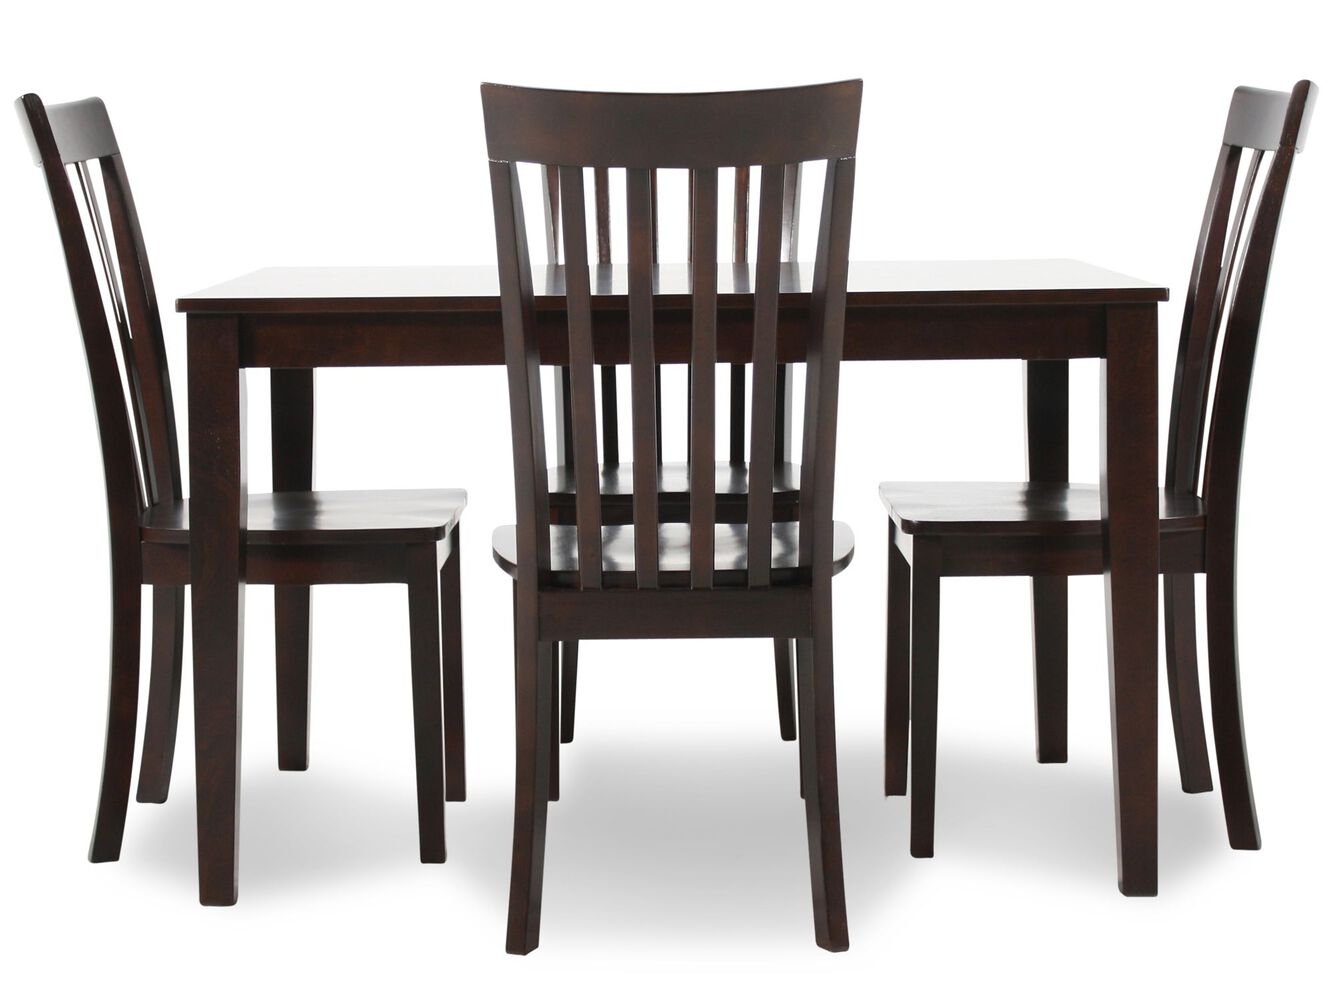 Ashley 5 Piece Dining Set Mathis Brothers : ASH D258047225 from www.mathisbrothers.com size 1333 x 1000 jpeg 88kB